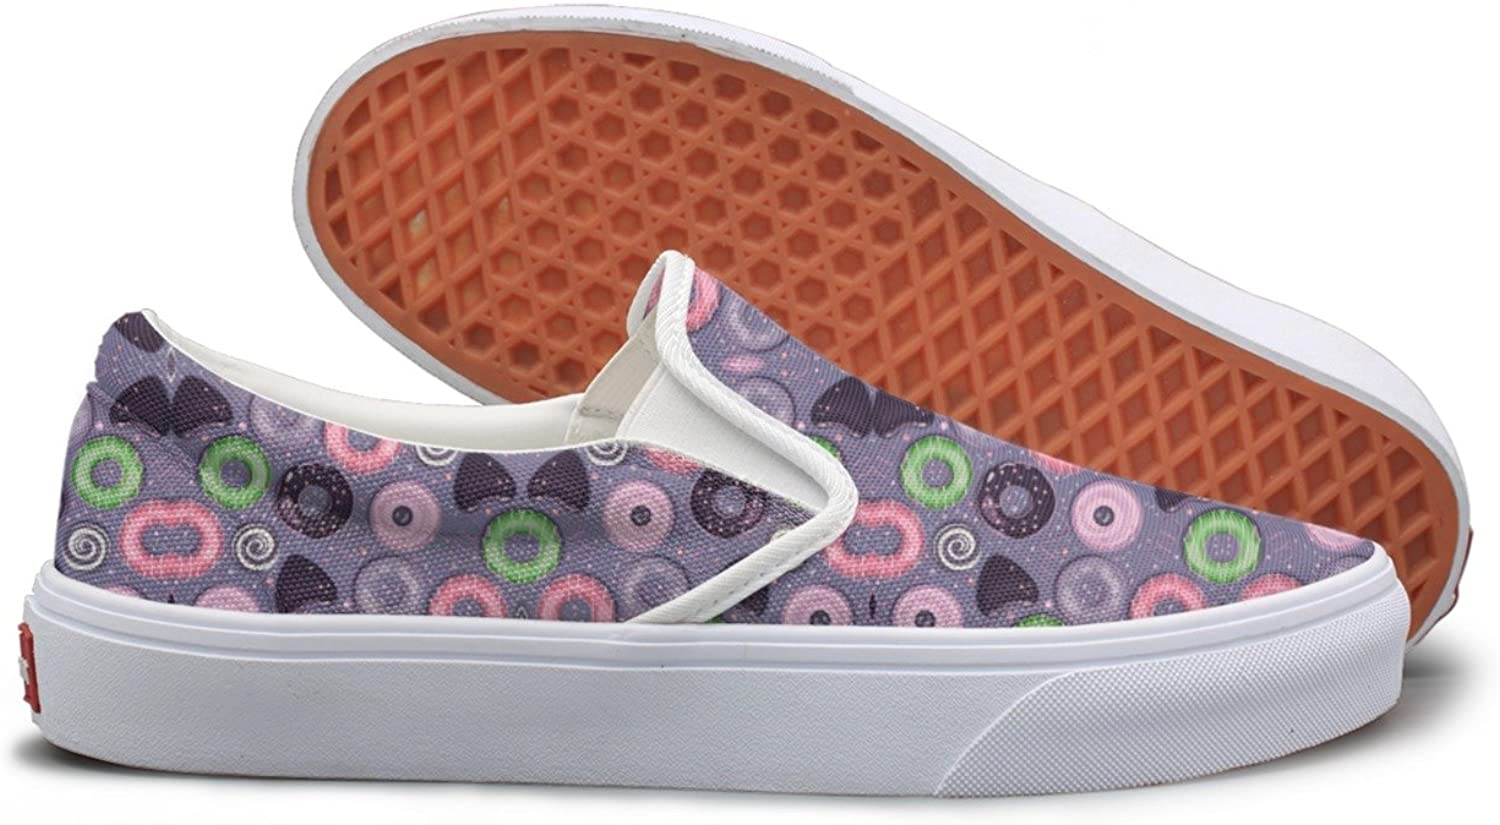 Lalige Beautiful Donut Womens Classic Canvas Slip-on Walking shoes